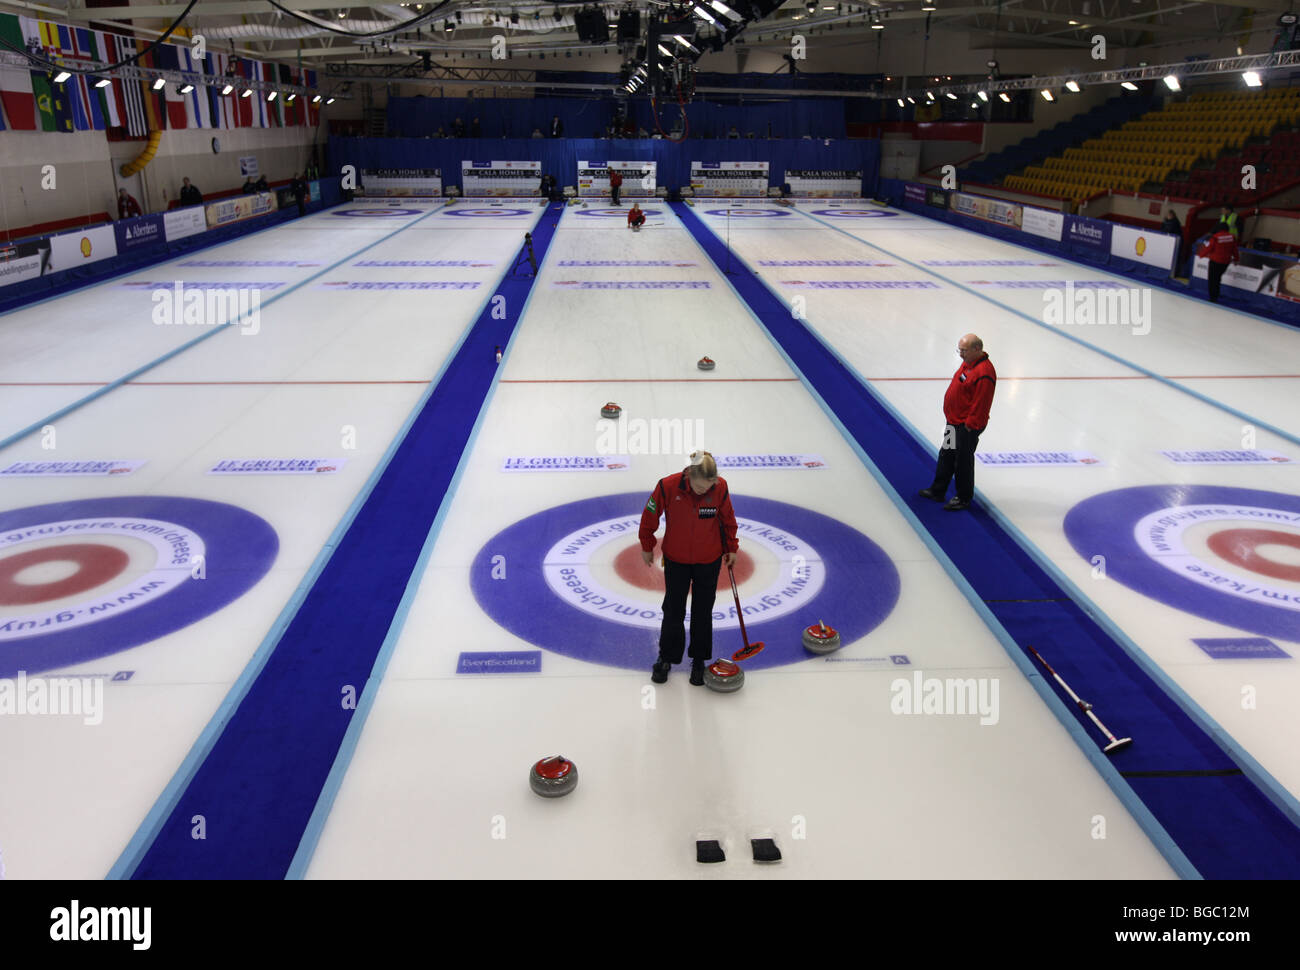 curling rink uk stockfotos curling rink uk bilder alamy. Black Bedroom Furniture Sets. Home Design Ideas